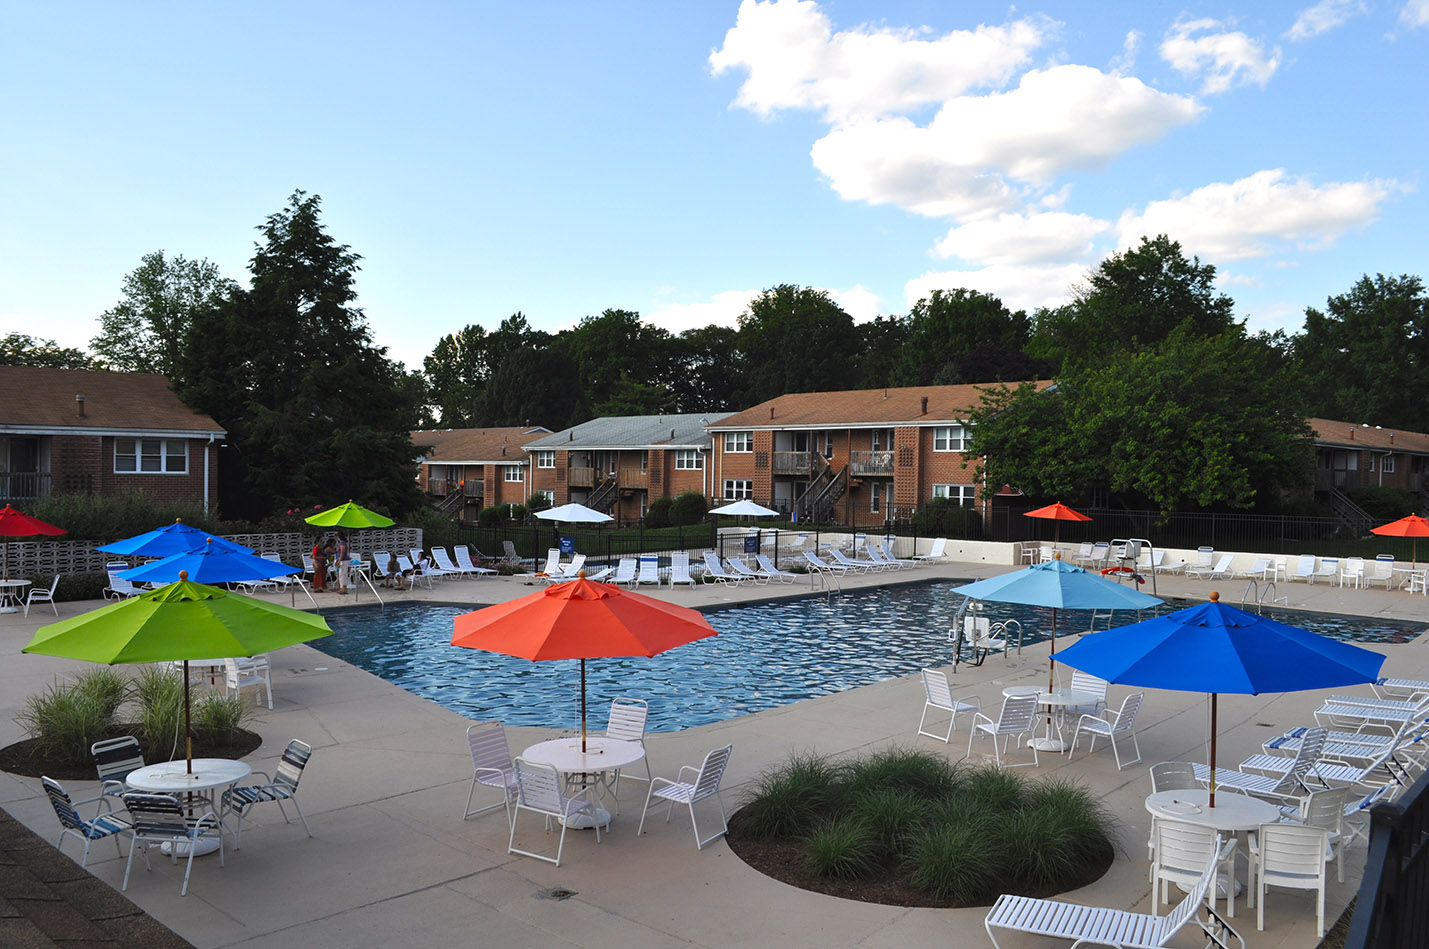 Outdoor shot of Radwyn Pool area with umbrellas, tables, and lounge chairs